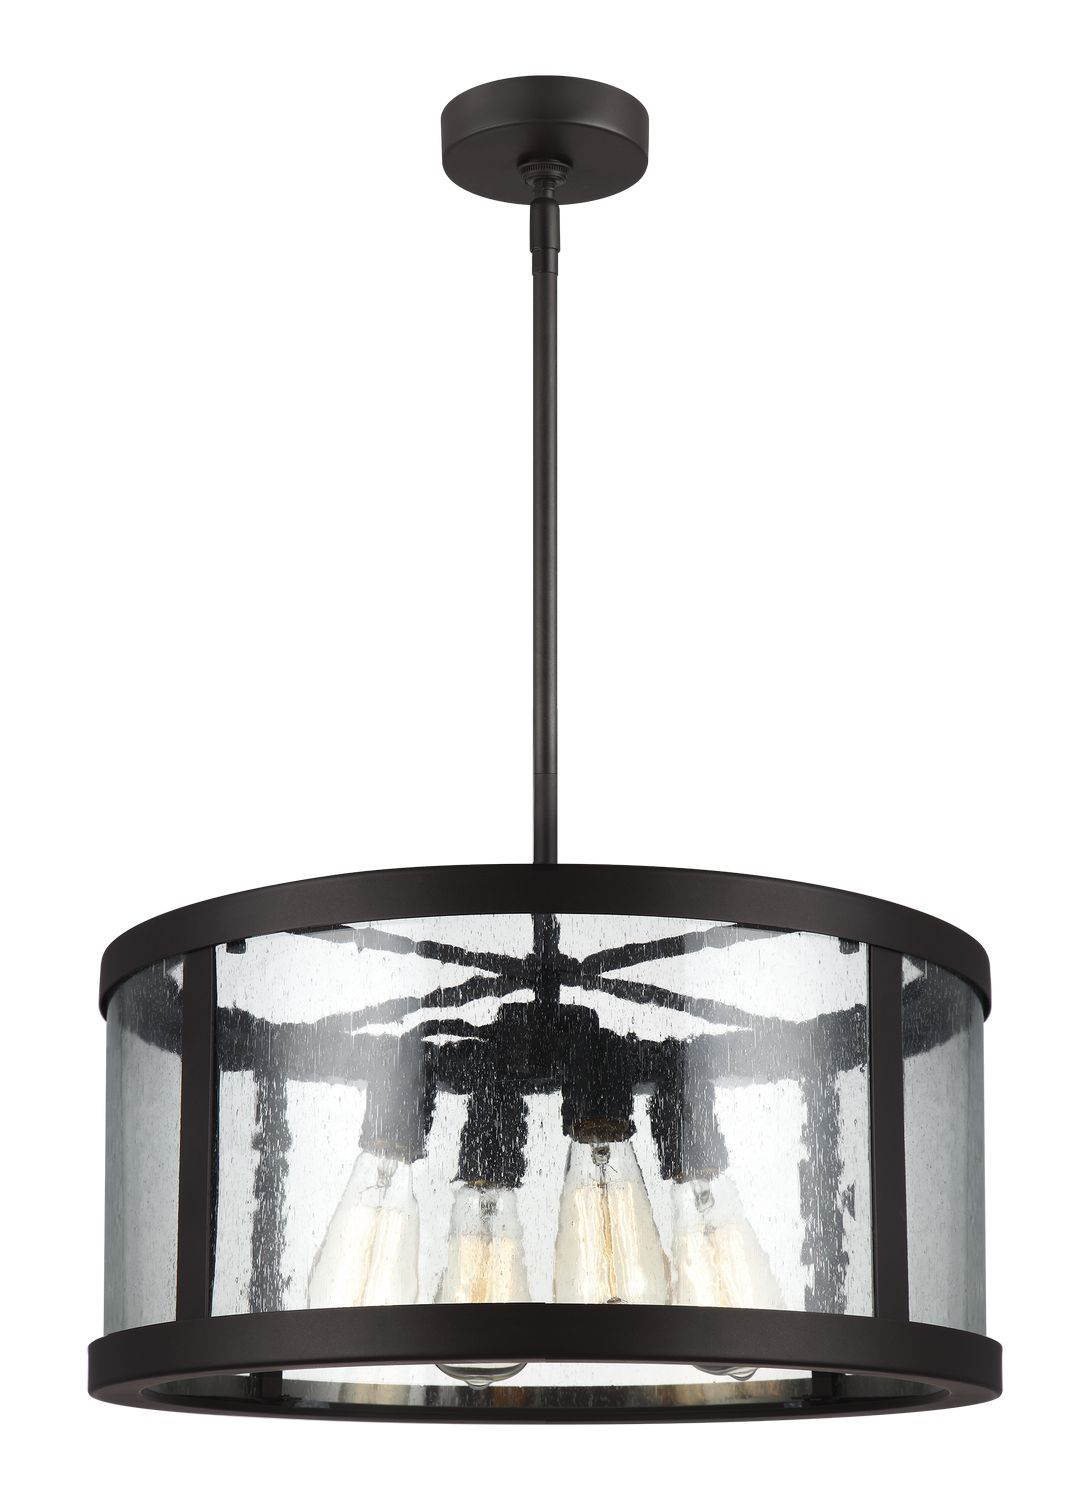 light source lighting shop for home lighting light fixtures and decor at light source lighting we offer illinois most extensive selection of lighting fixtures from four pendant 202 pinterest lighting design lights